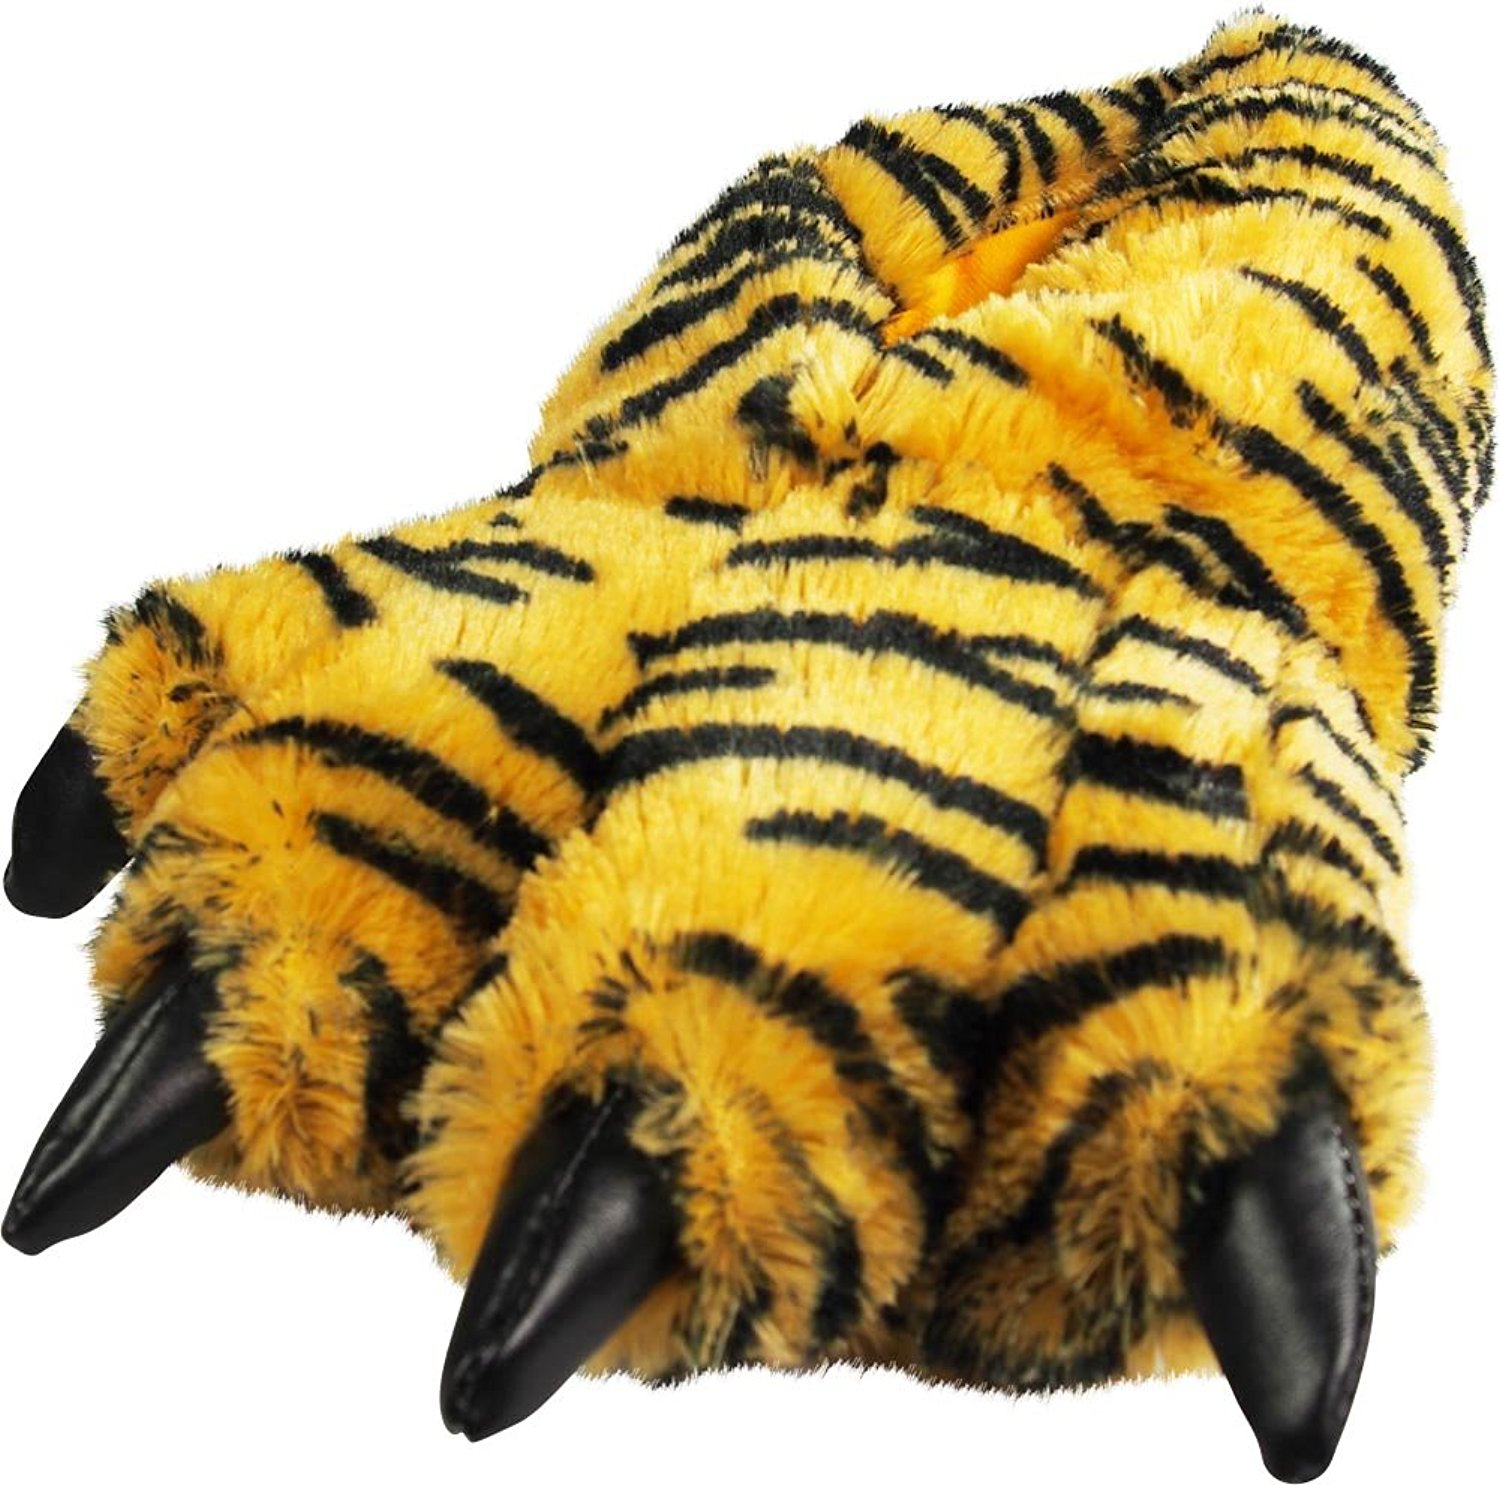 56a00559fa3a Get Quotations · NORTY Grizzly Bear Stuffed Animal Claw Slippers - Plush Paw  Slippers - Furry Animal Slippers -